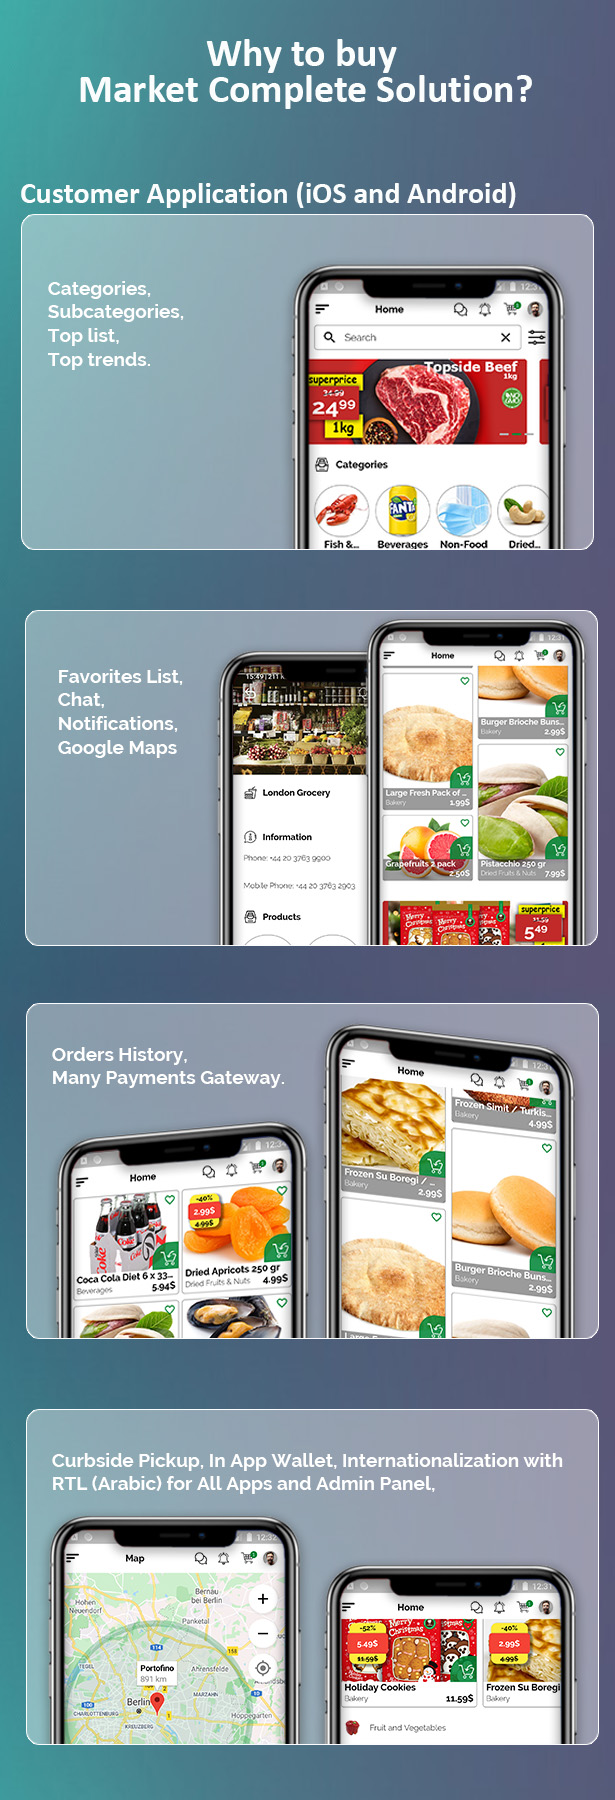 Single Market Grocery/Food/Pharmacy (Android+iOS+Admin Panel) Full App Solution with Web Site - 1